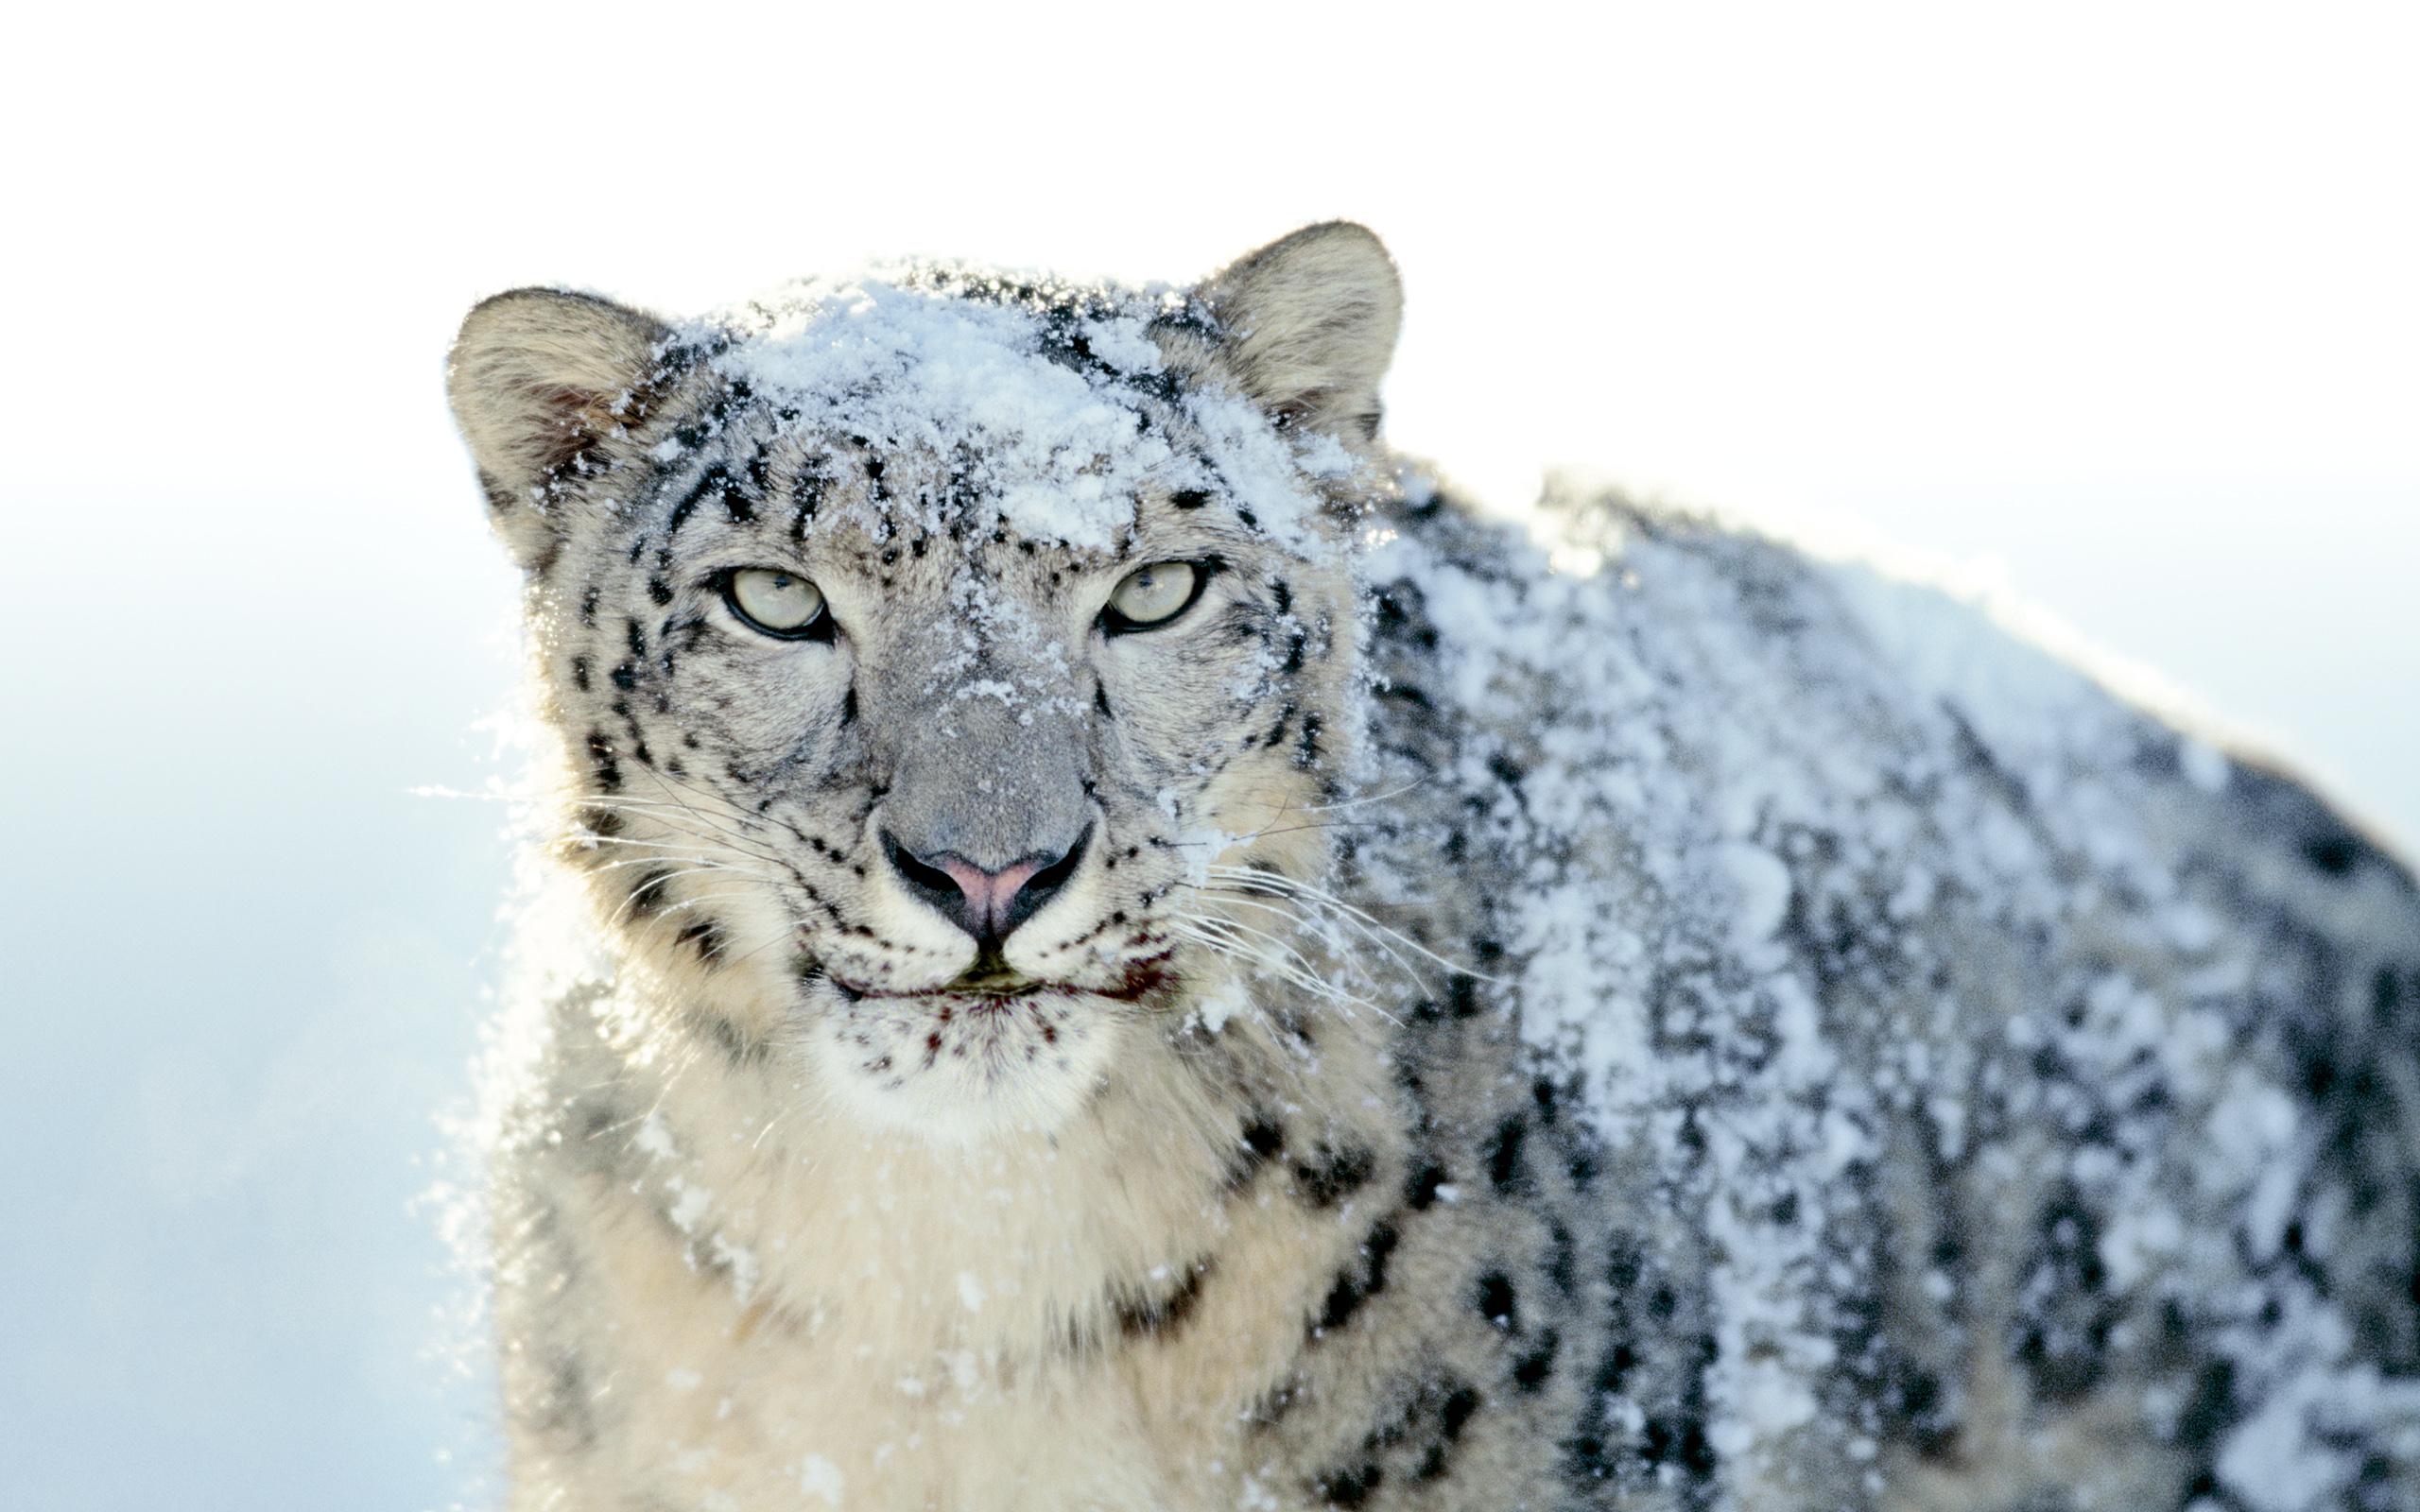 Endangered: Aspyr to Discontinue Support for Snow Leopard